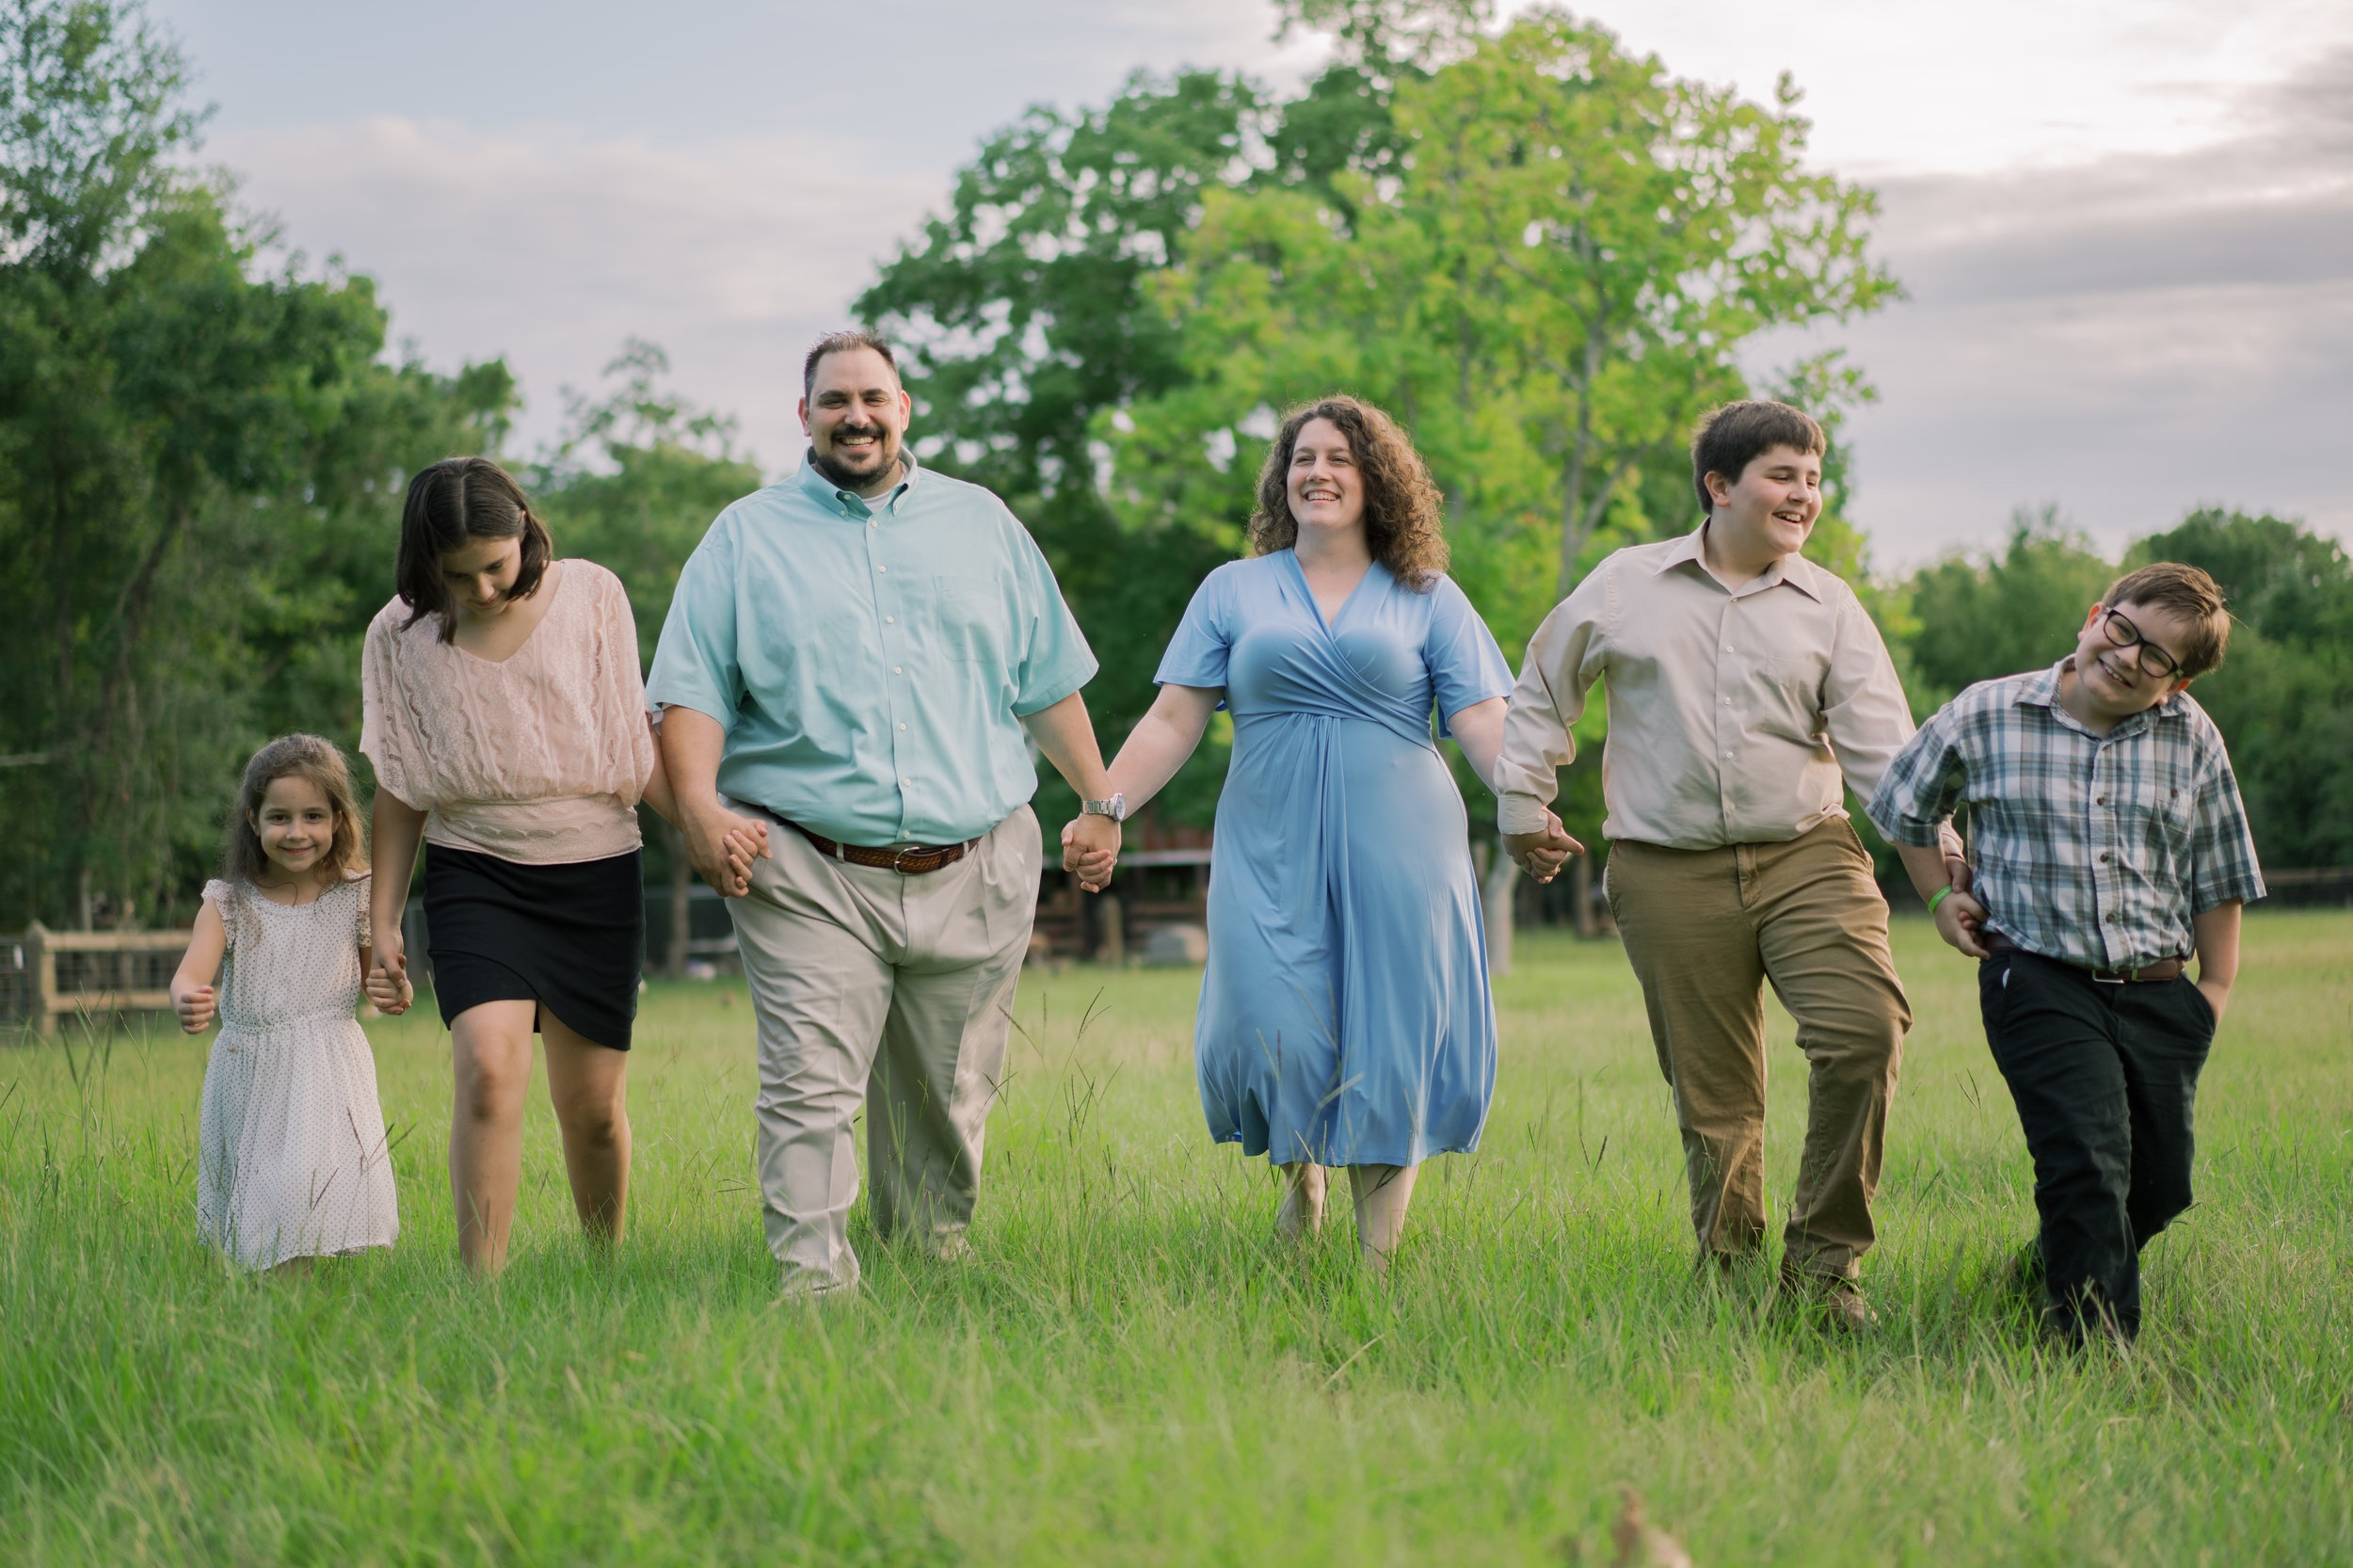 Family portrait session on Redemption Square Farm in Gautier, Mississippi on the Mississippi Gulf Coast.